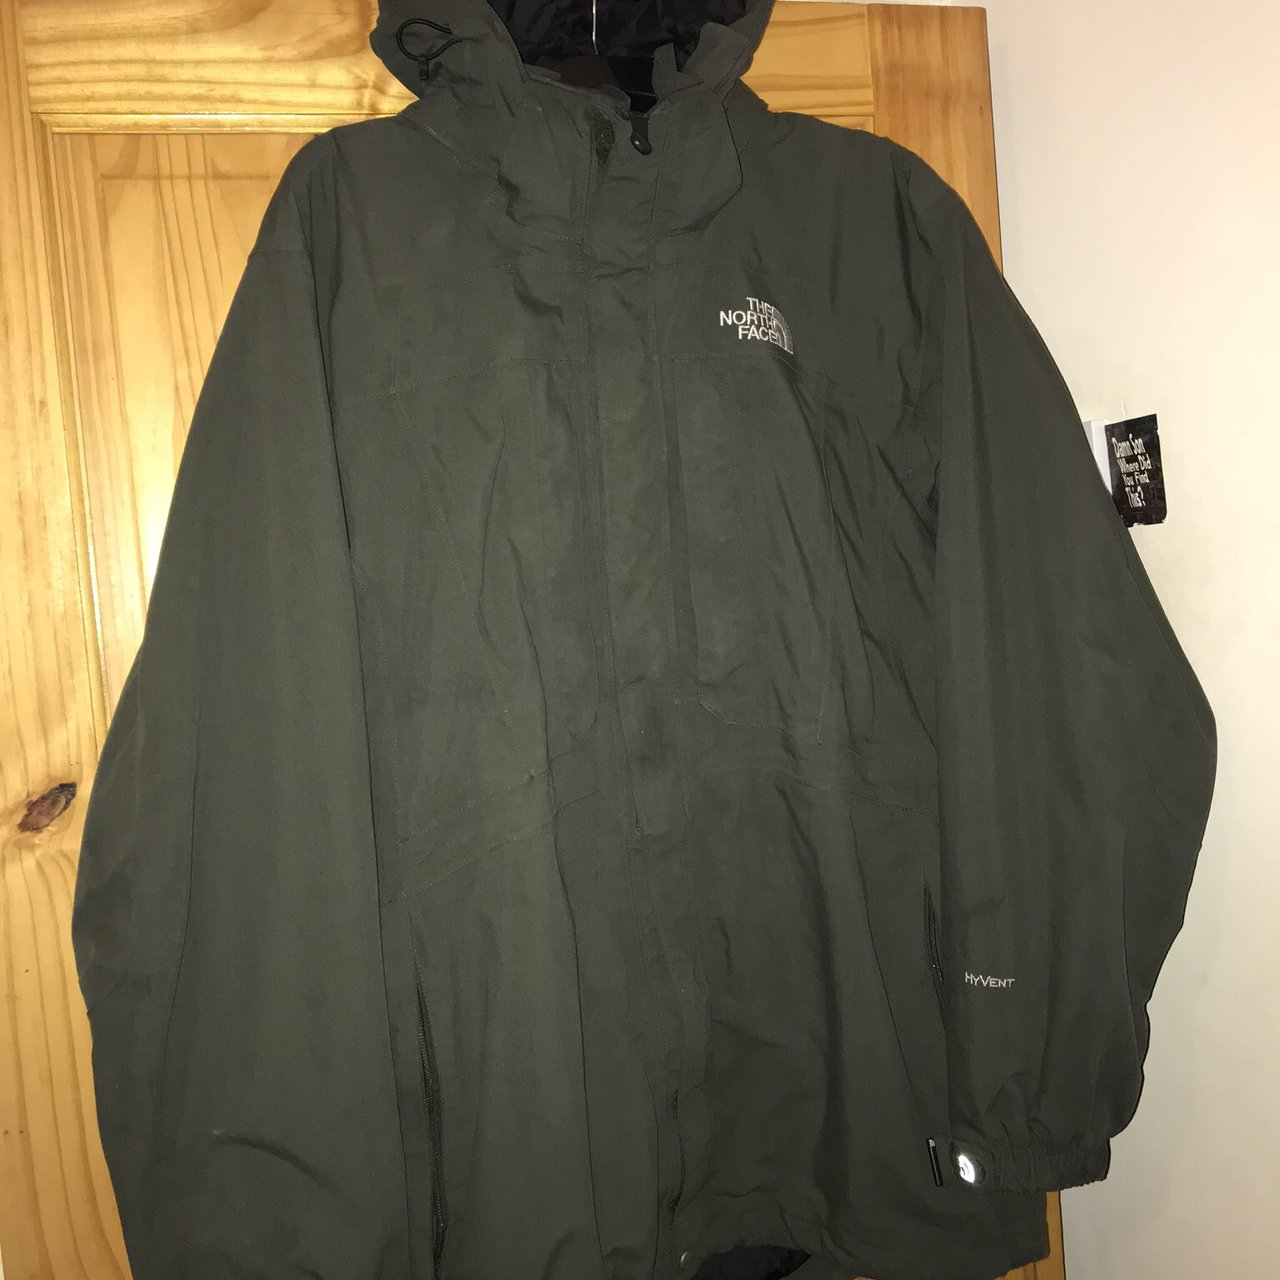 aef41a98d7 The North Face Hyvent Olive Green Jacket Size L Men s 9 10 - Depop